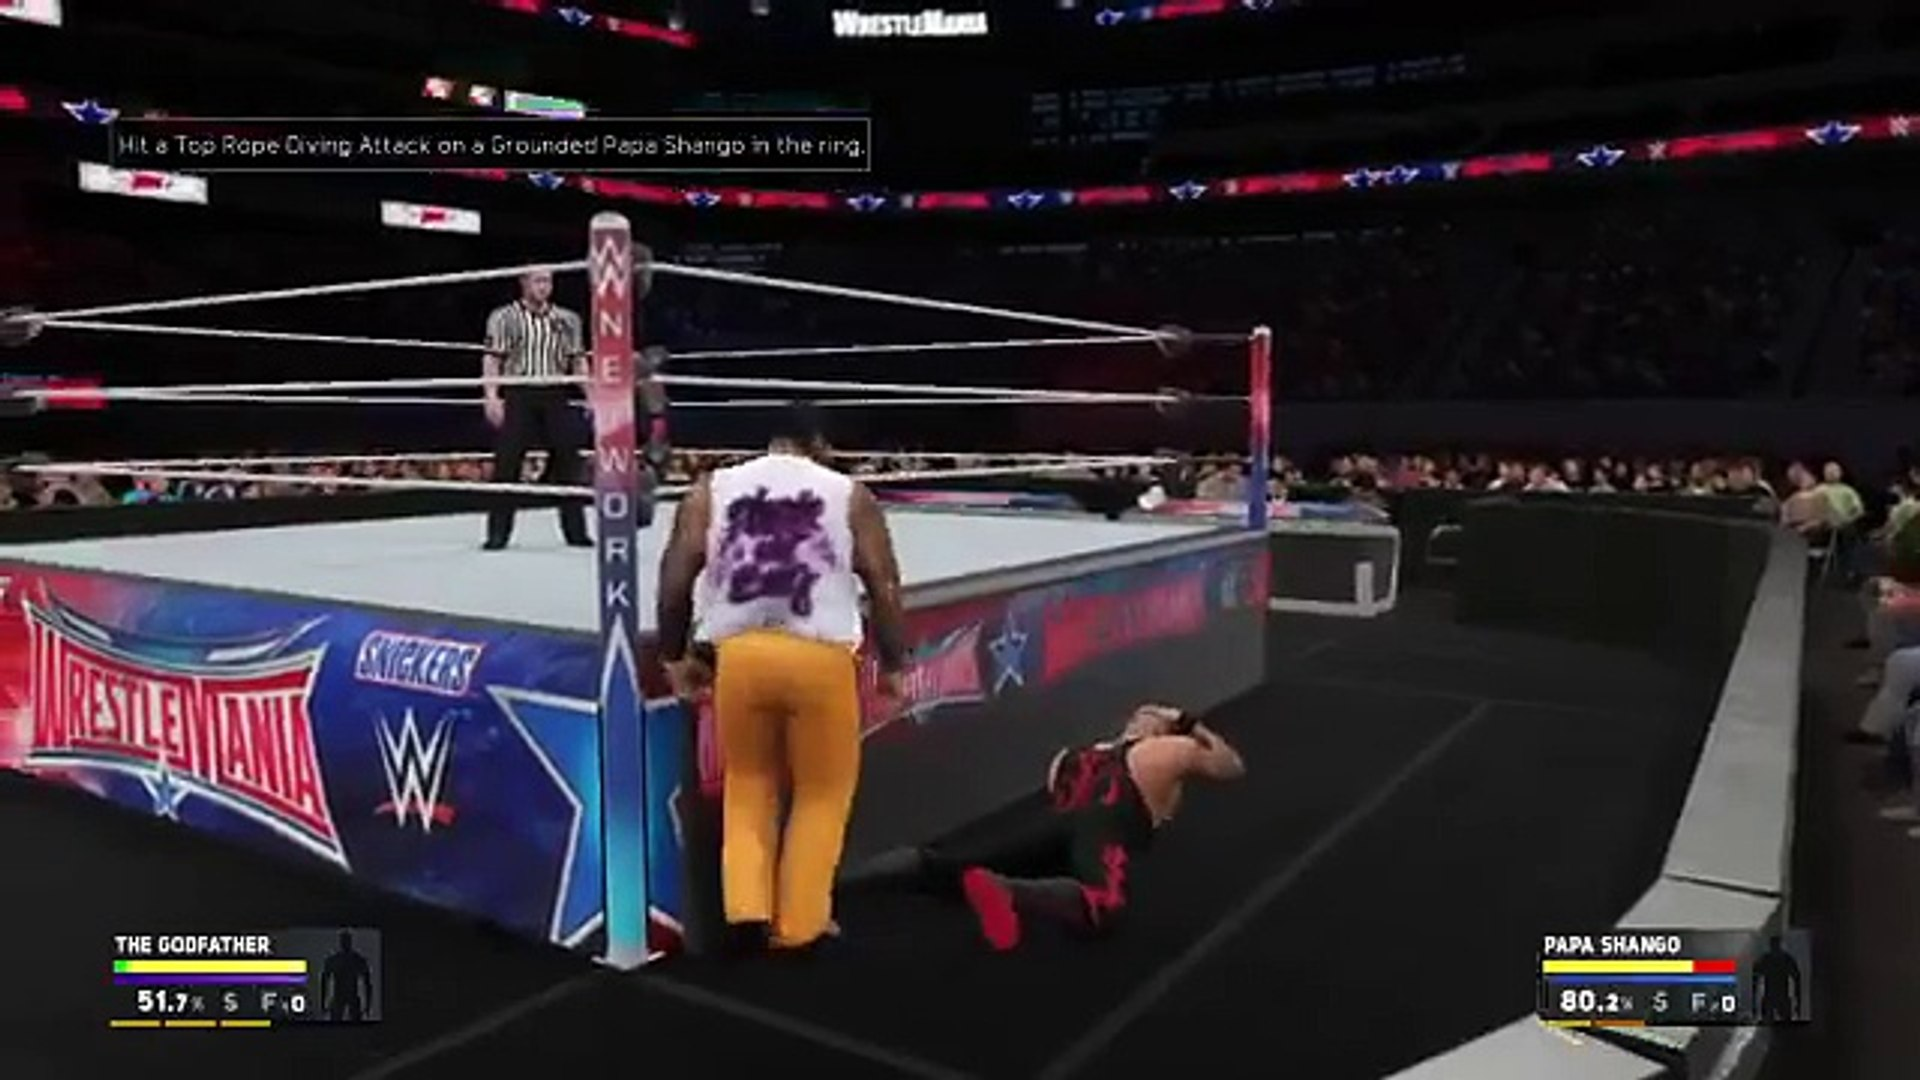 Jerry Lawler botched his lines reading for 2K17 and they didn't even bother editing it out